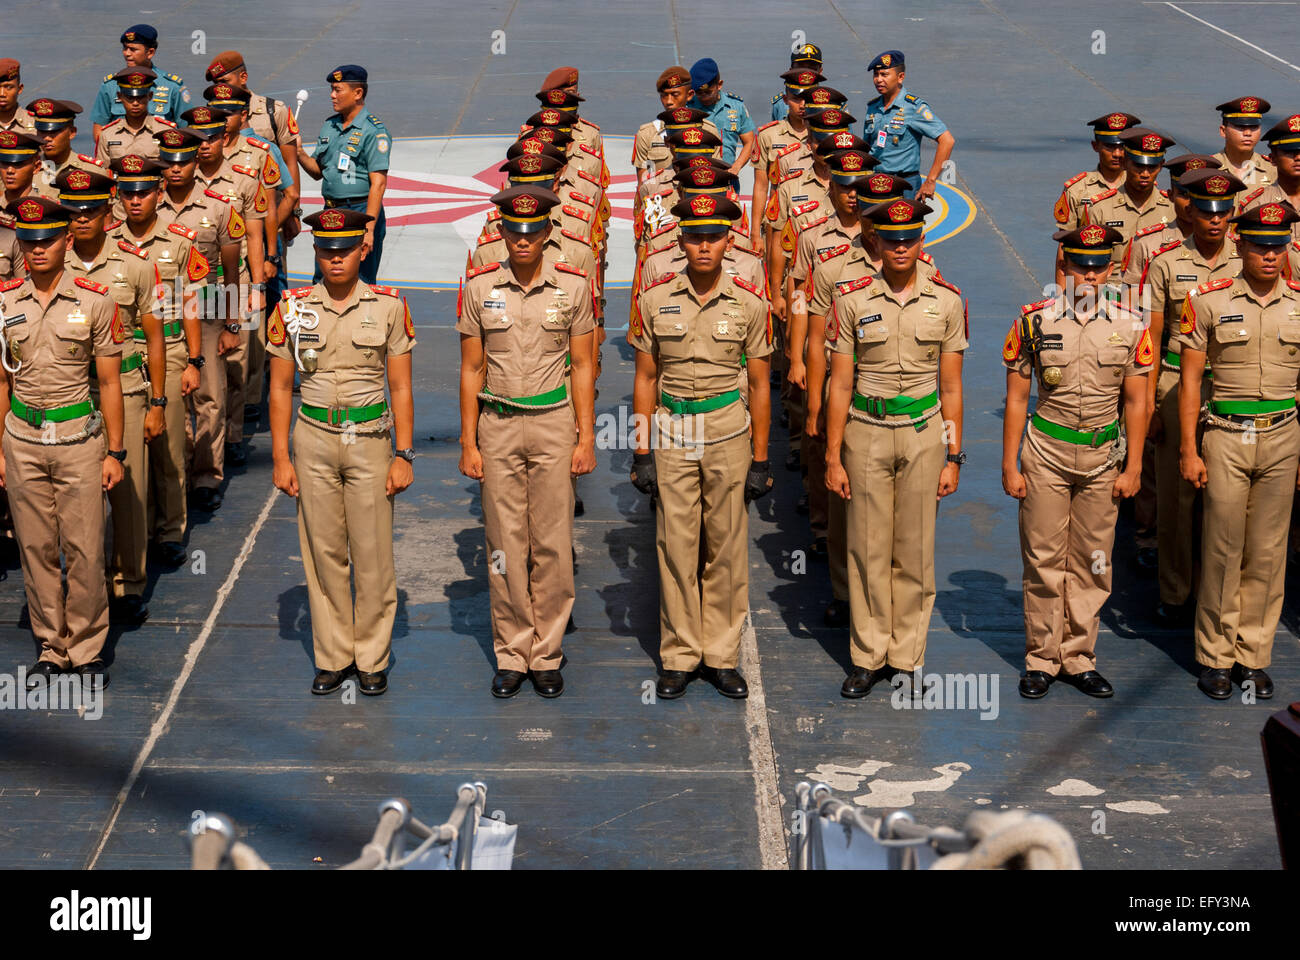 Indonesian navy cadets lining up before the last sail of the original Dewaruci tall ship in 2012. - Stock Image